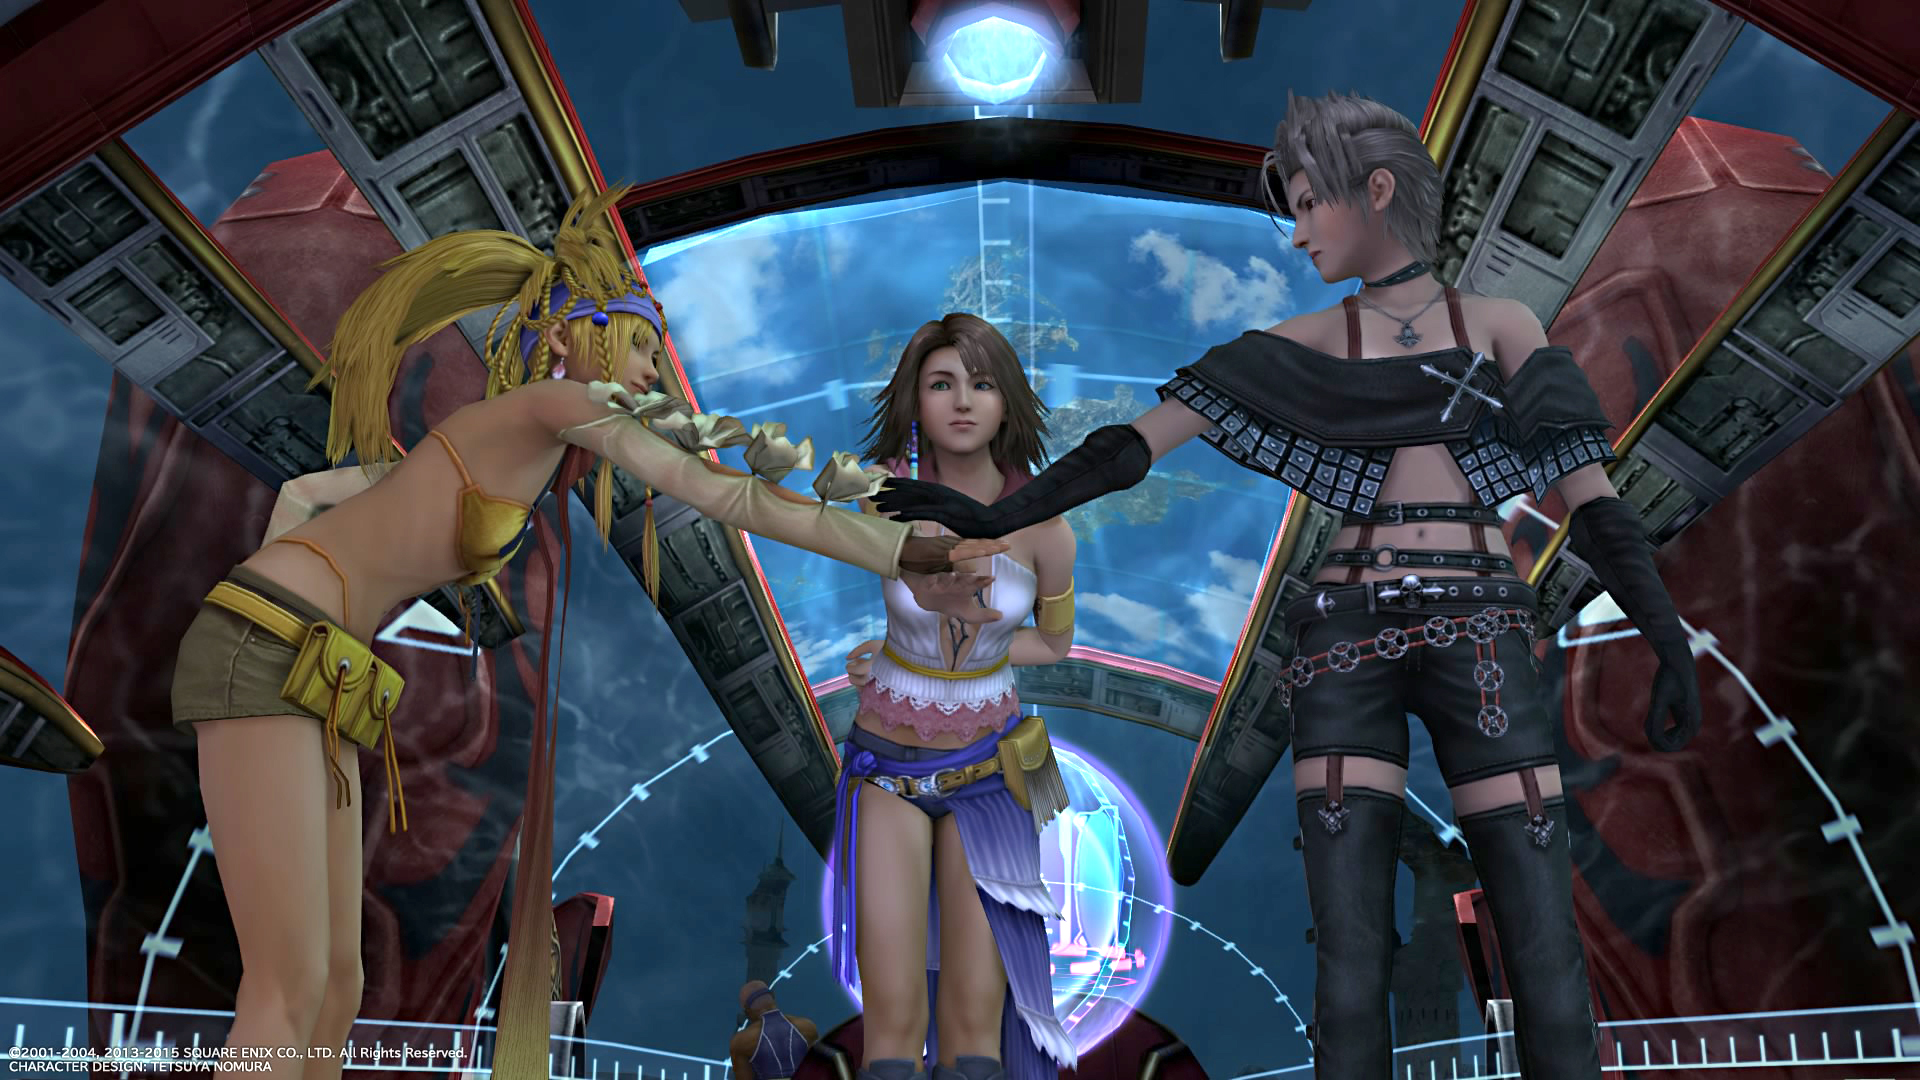 X X 2 Final Fantasy X X 2 Hd Remaster 20150225153430 Michibiku